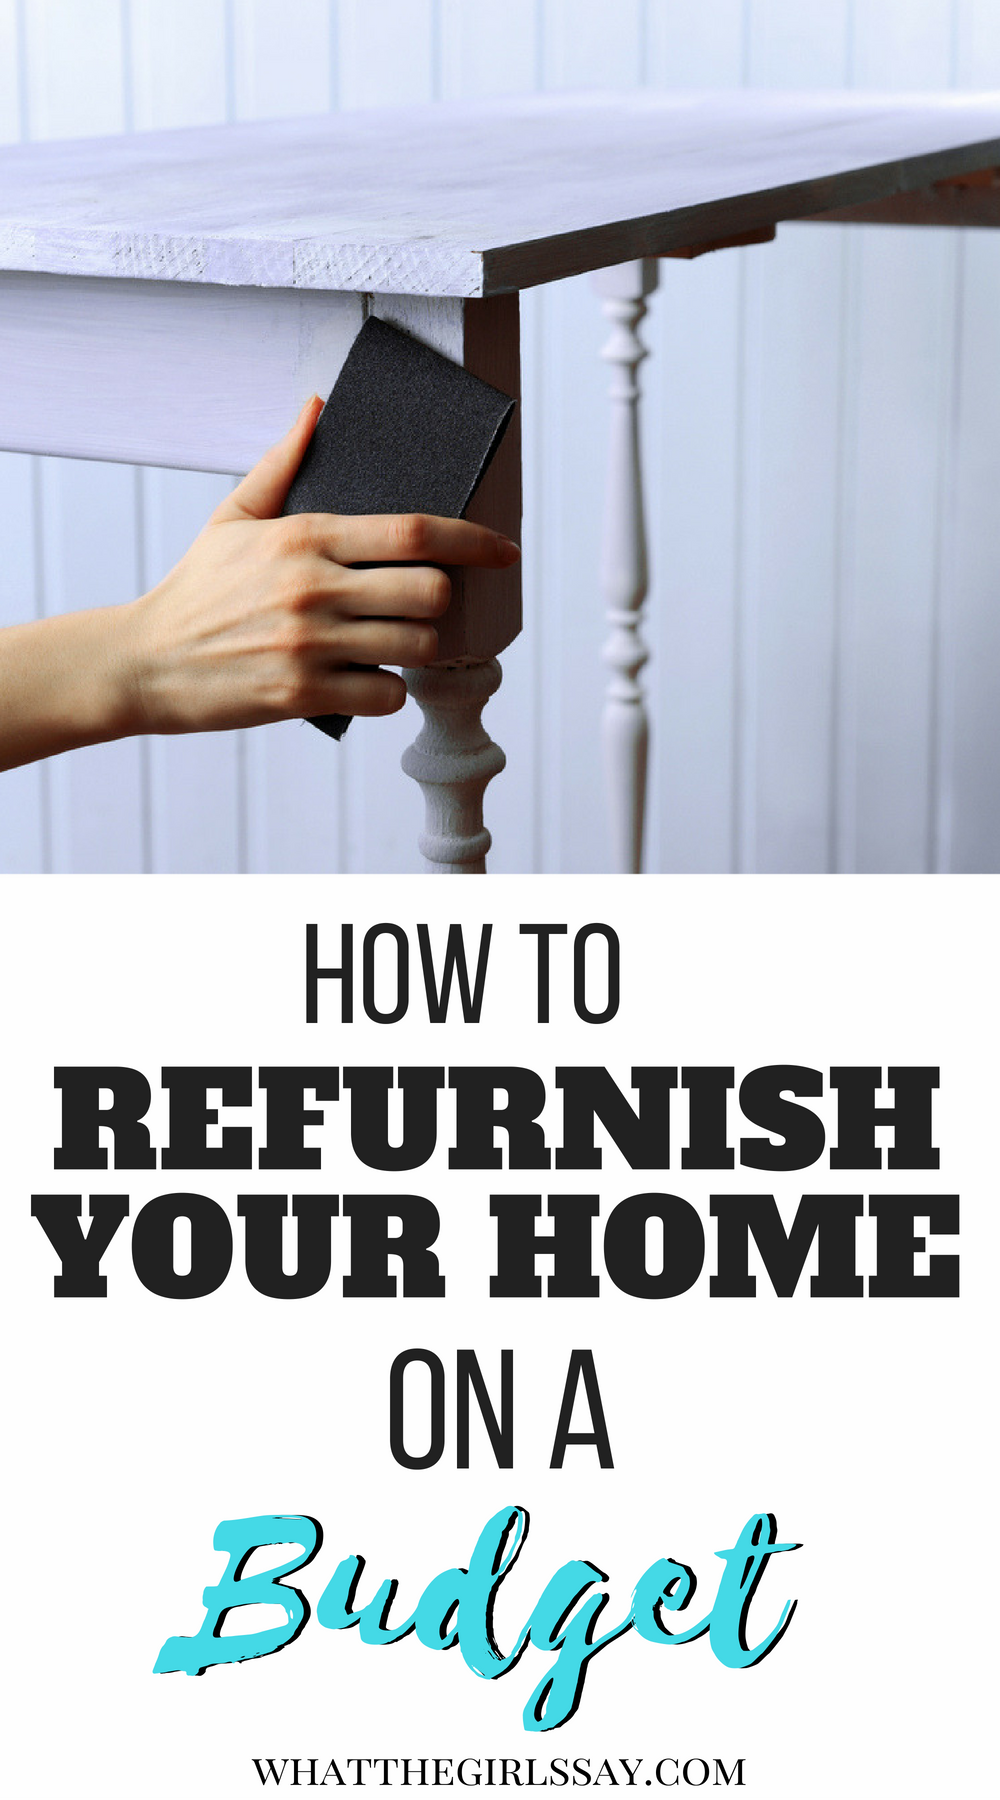 How to Refurnish Your Home on a Budget